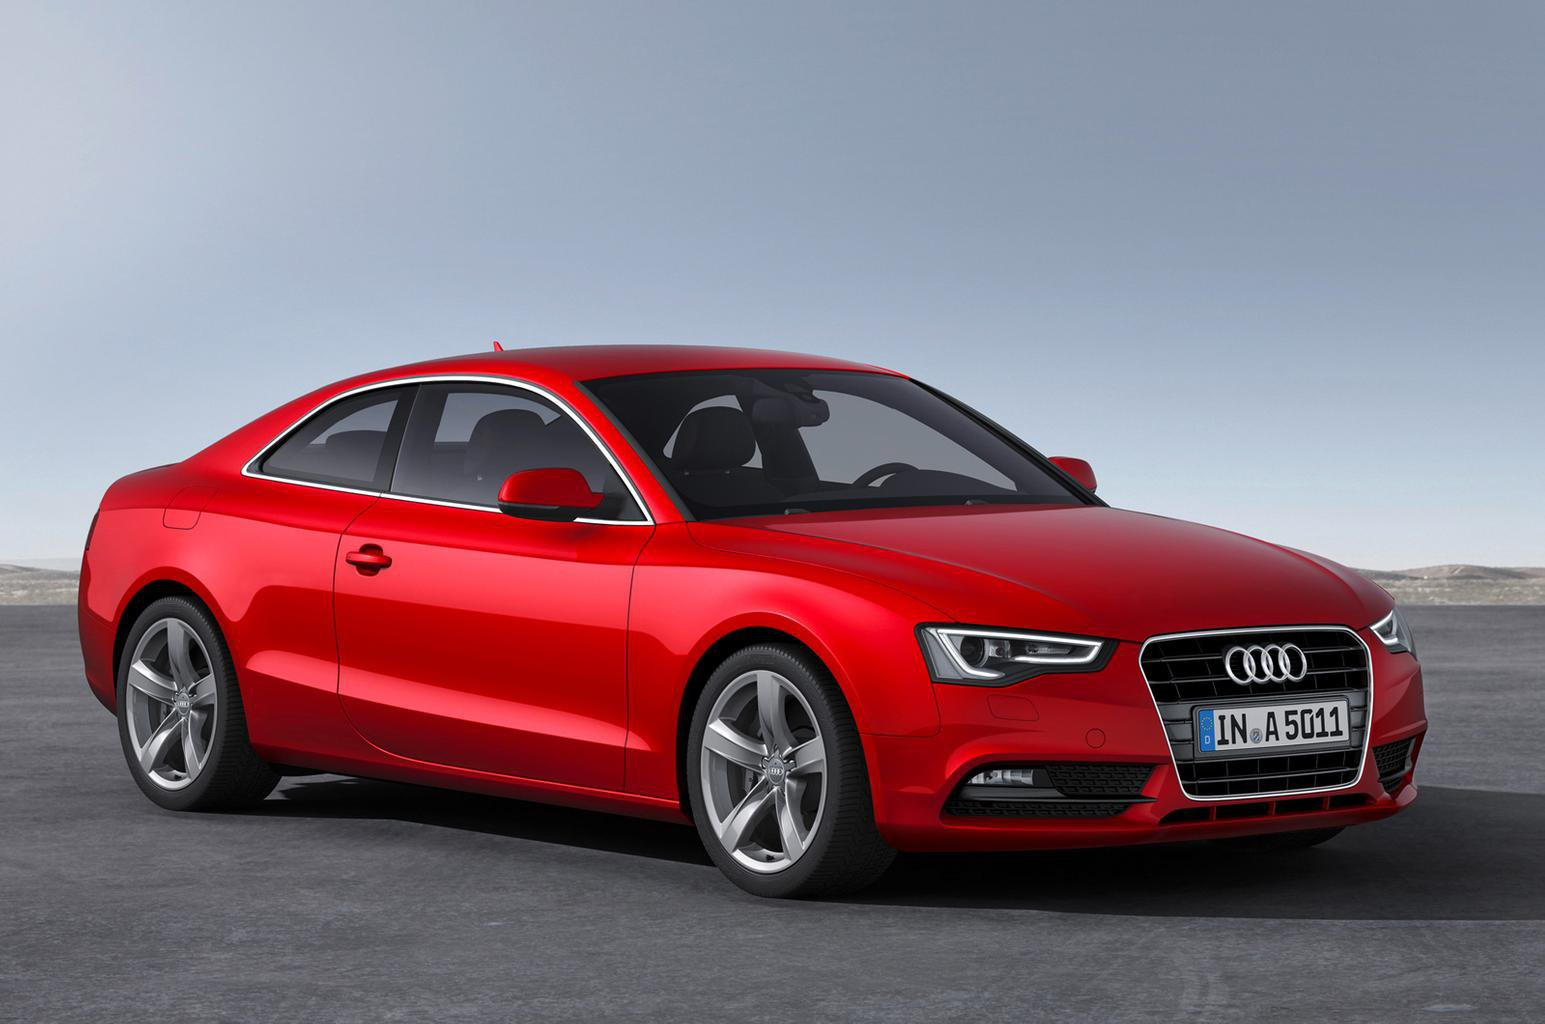 Deal of the Day: Audi A5